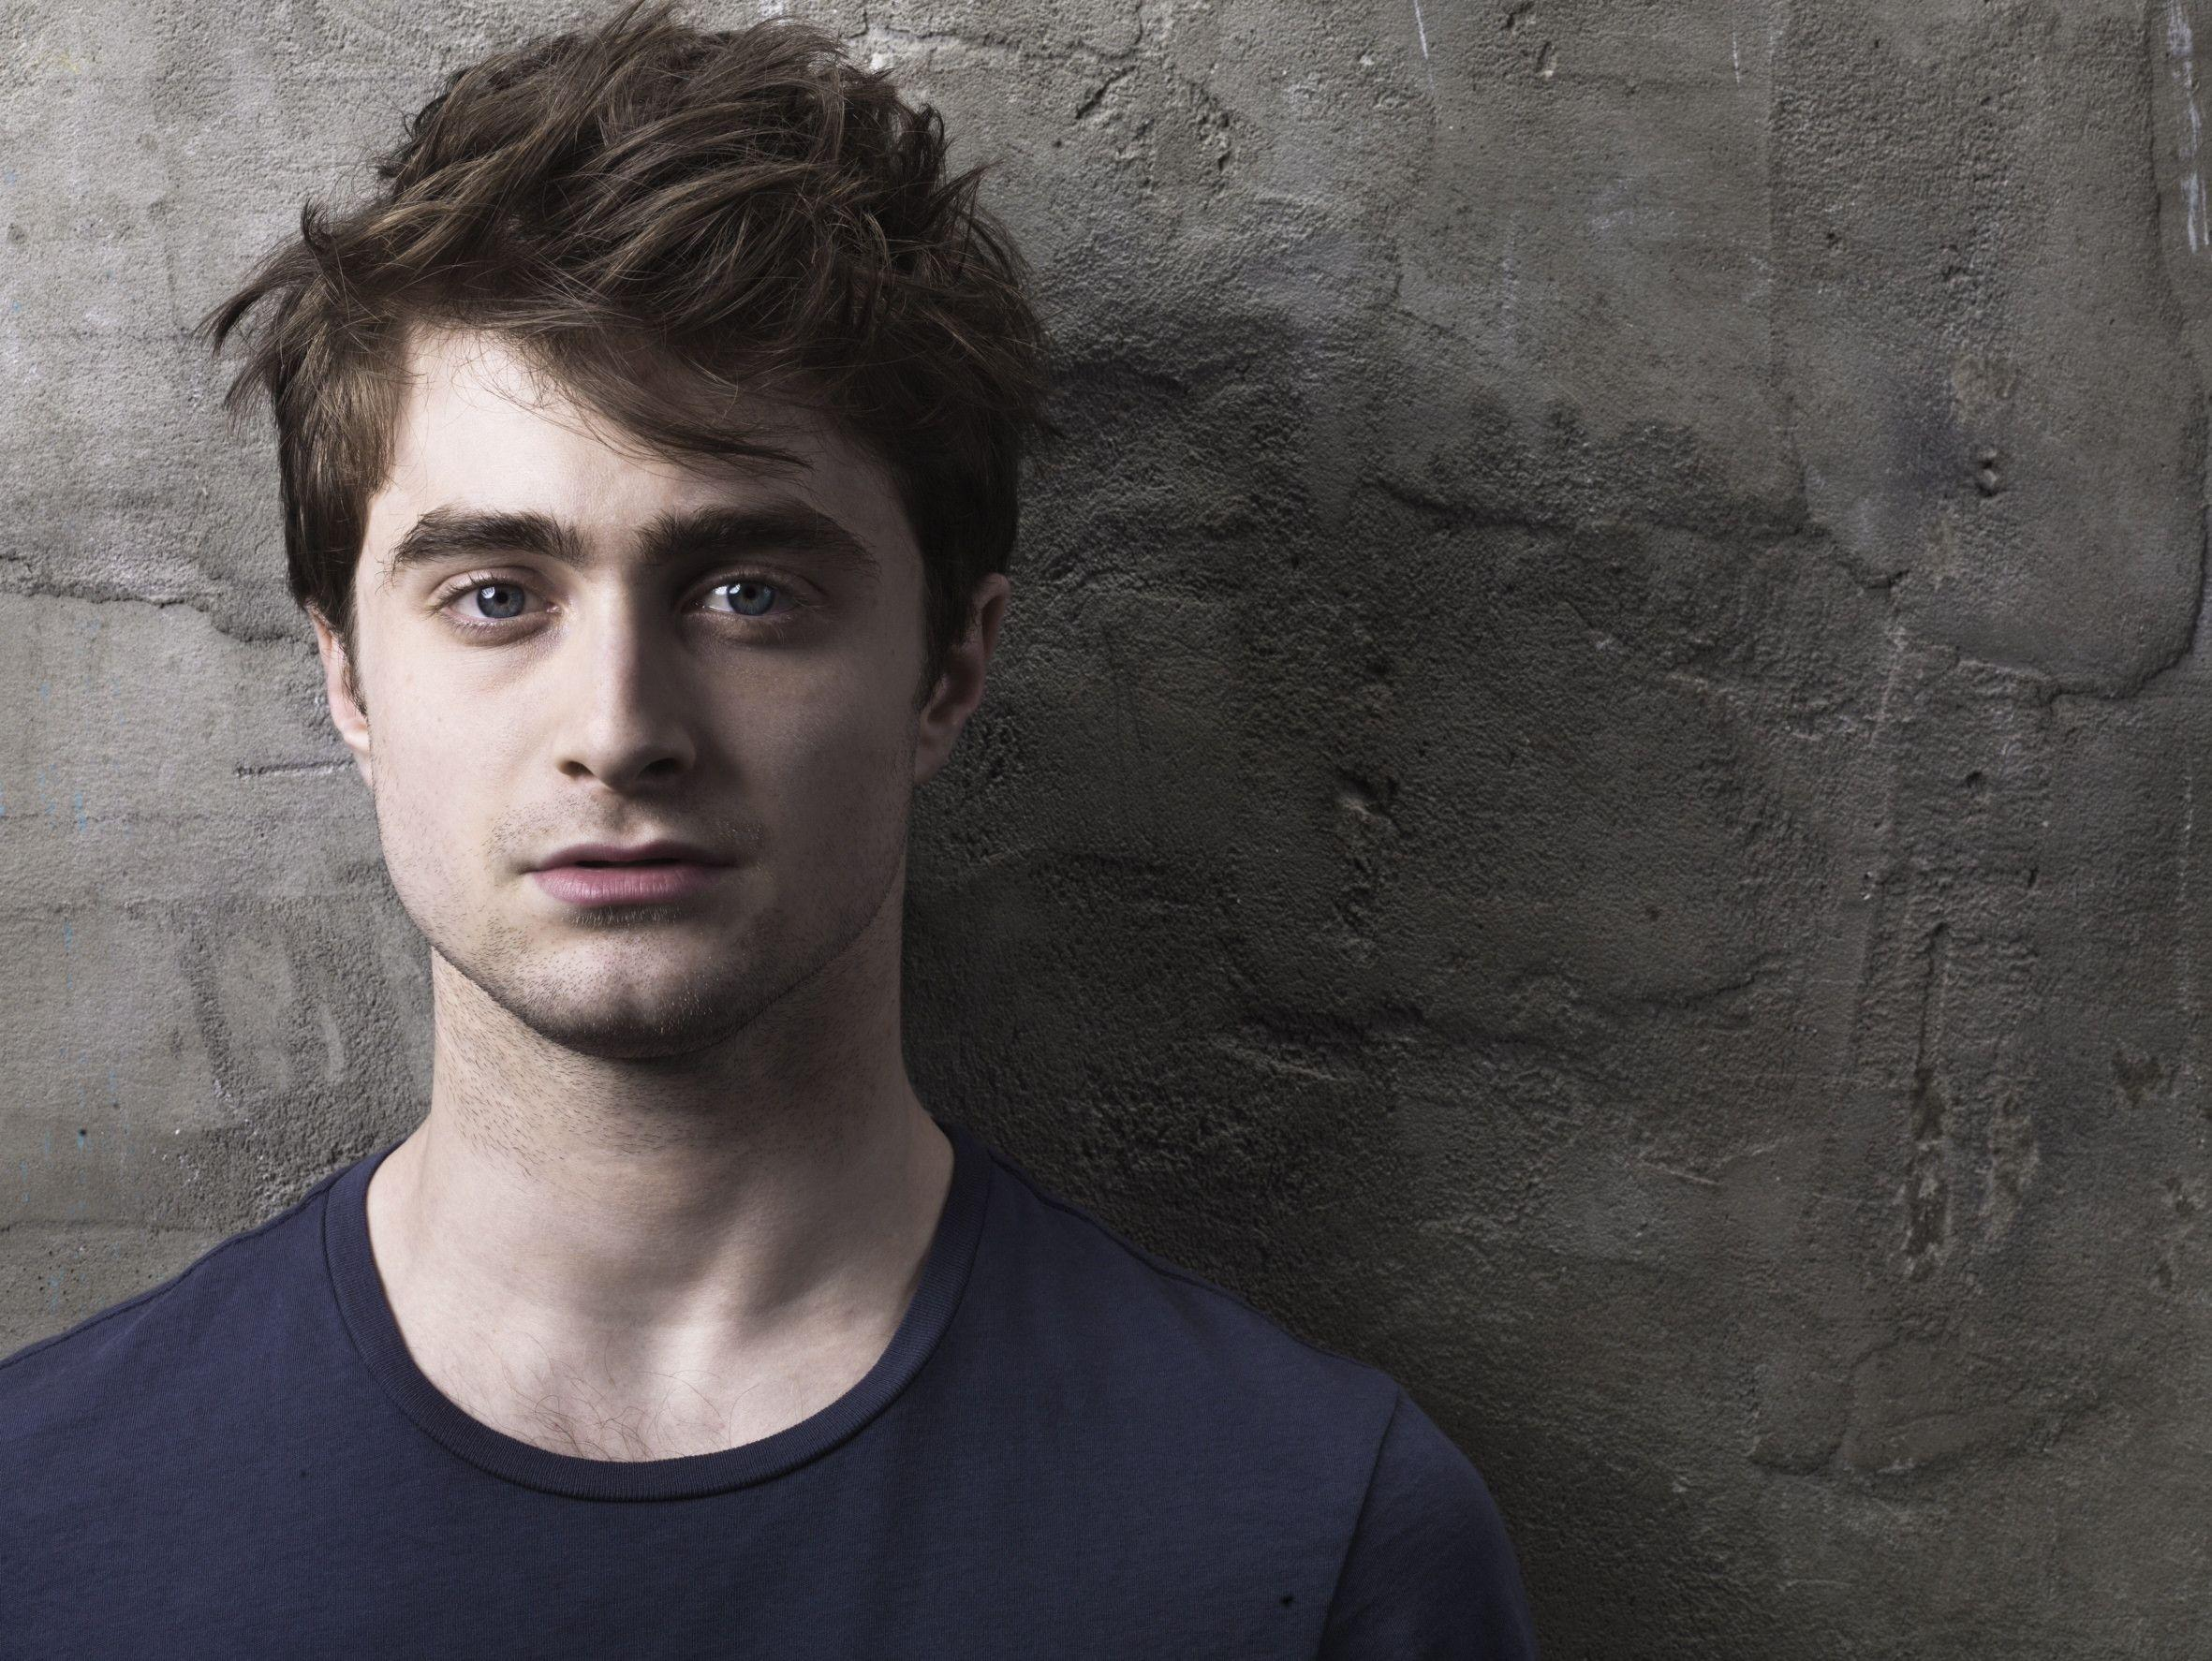 daniel radcliffe 2016 wallpapers - wallpaper cave